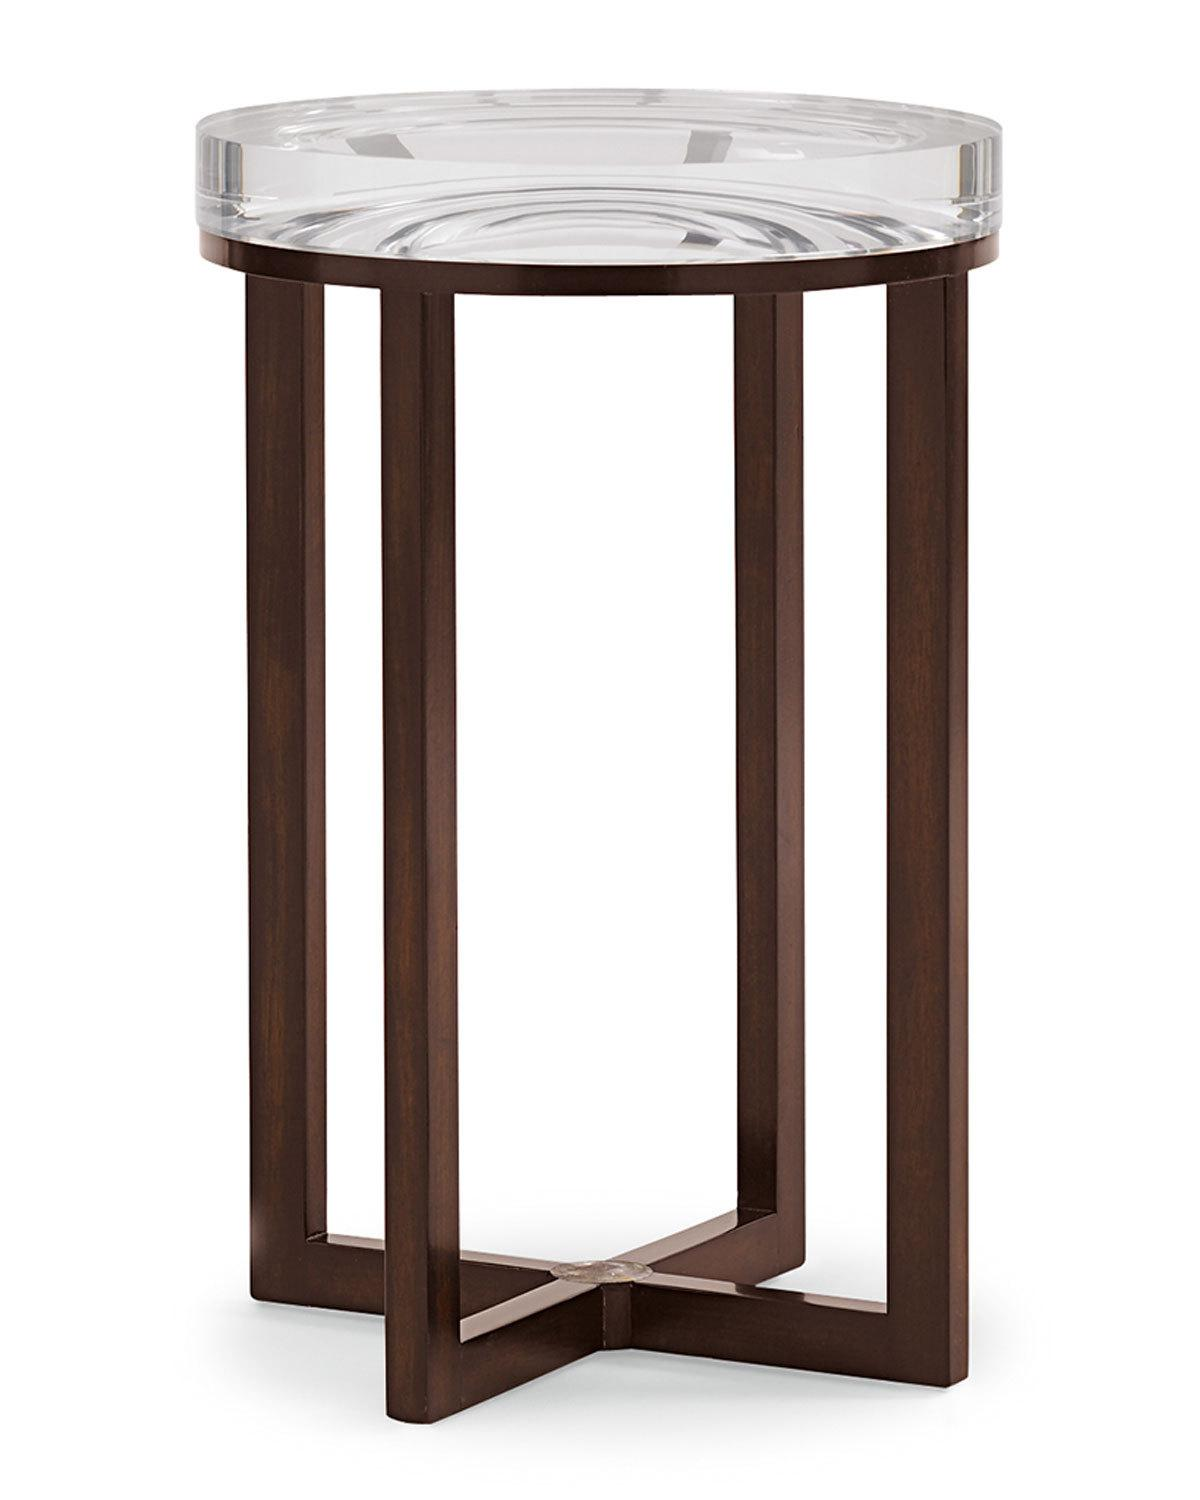 depth perception side table products furniture small accent wood cube coffee marble entry mid century style dining country lamps mat set distressed bathroom inch round vinyl